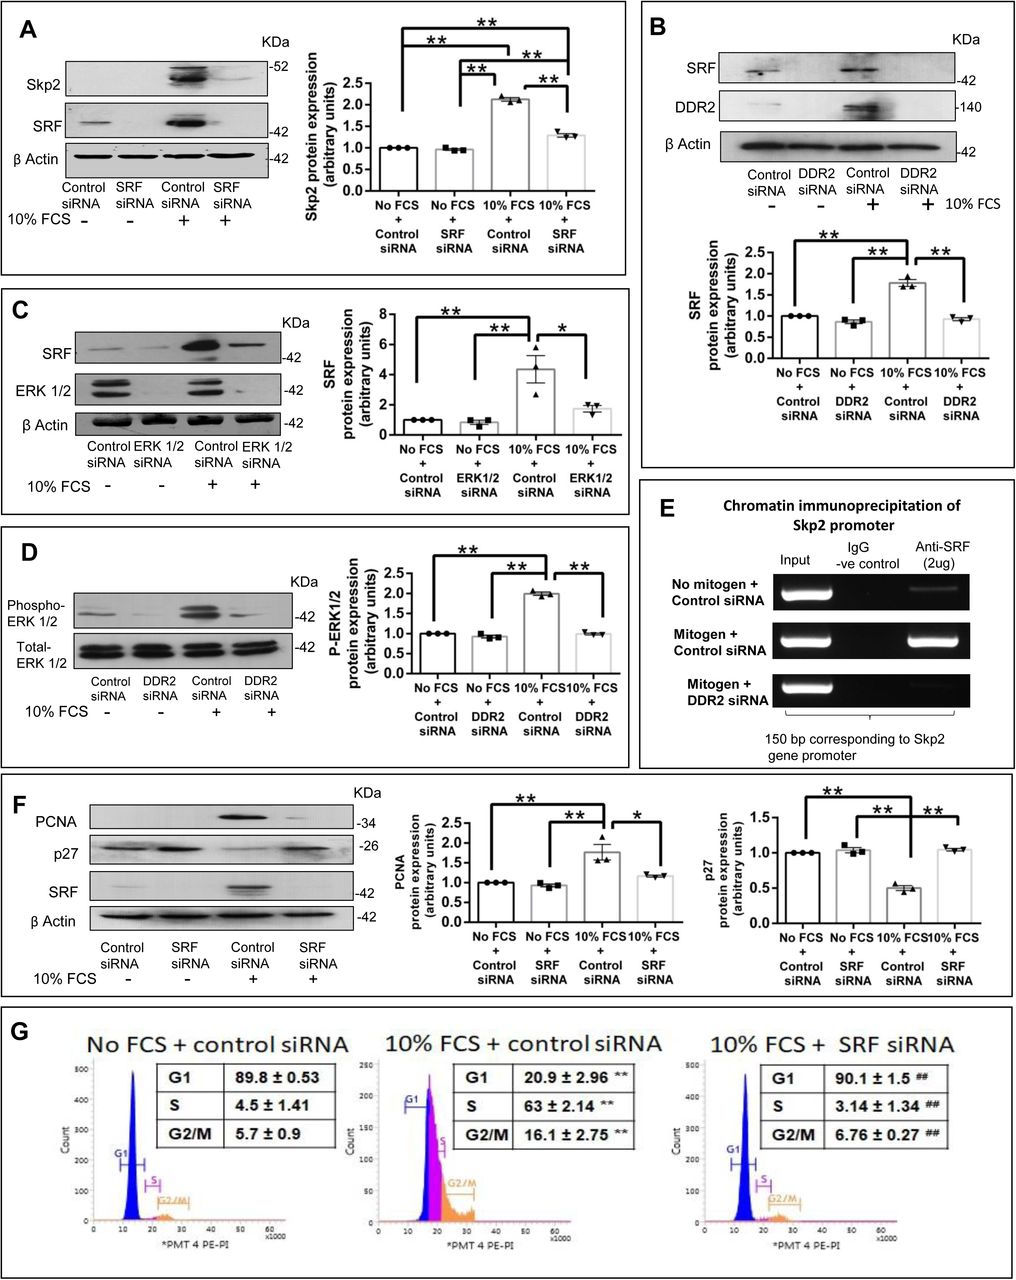 Regulation of p27: Post-translational regulation via SRF-dependent Skp2. ( A-G ) Sub-confluent cultures of cardiac fibroblasts were transfected with SRF siRNA ( A, F and G ), ERK1/2 siRNA ( C ) or DDR2 siRNA ( B, D and E ) (with Control siRNA) and, following revival for 12h in 10% serum-supplemented medium, the cells were serum-deprived for synchronization. Post-synchronization, the cells were exposed to 10% Fetal Calf Serum. ( A ) SRF siRNA transfected cells were collected at 8h and analysed by western blotting for expression levels of Skp2, with β-actin as loading control. Significance was determined by two-way ANOVA (Tukey's multiple comparisons test, **p